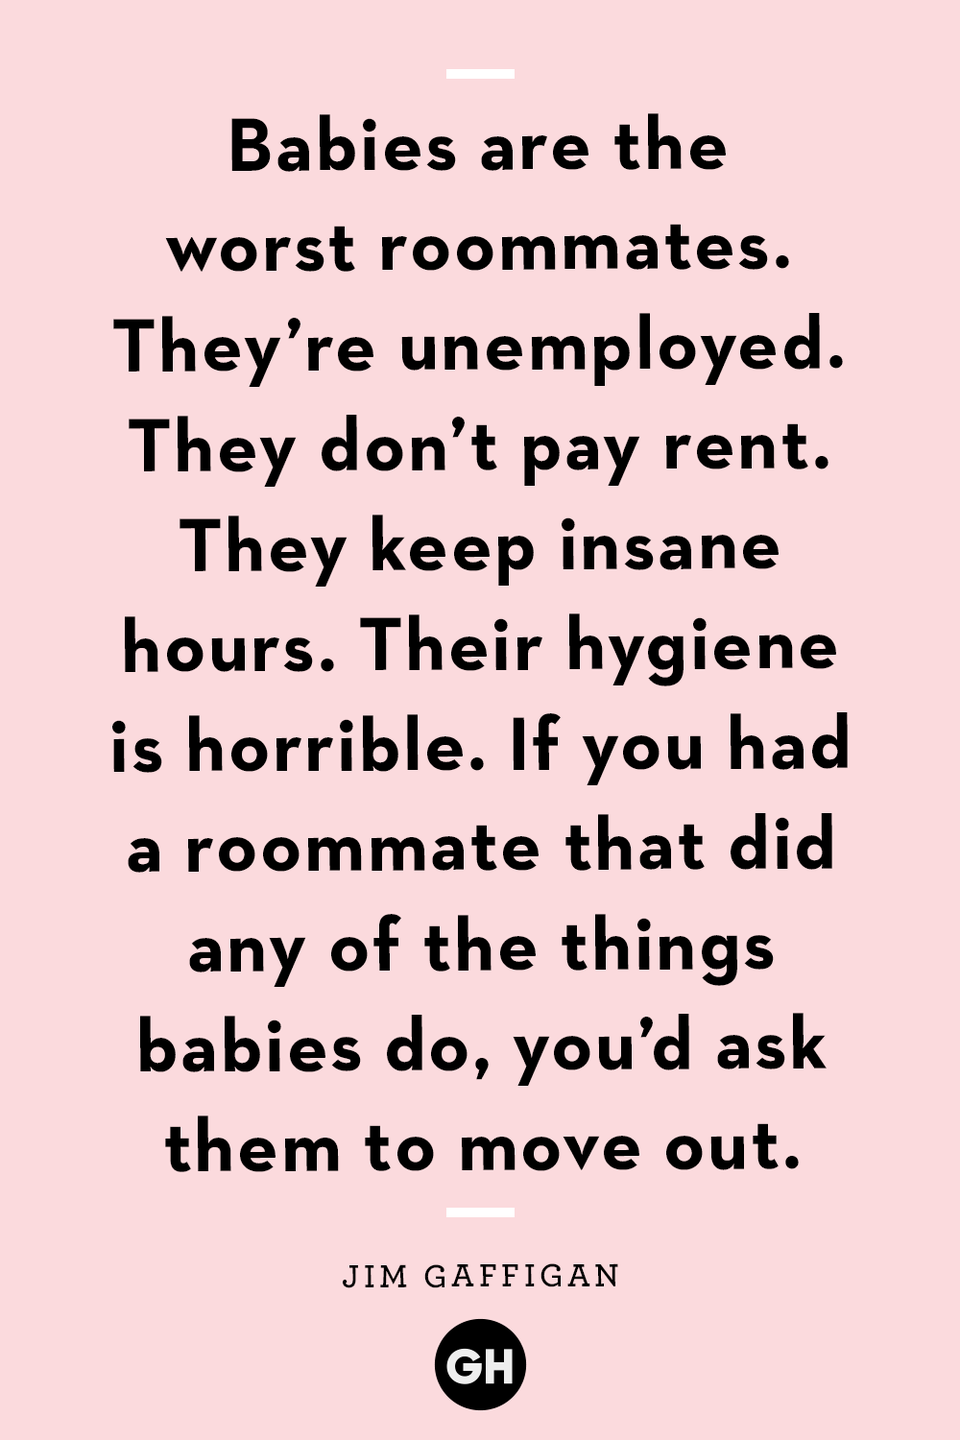 <p>Babies are the worst roommates. They're unemployed. They don't pay rent. They keep insane hours. Their hygiene is horrible. If you had a roommate that did any of the things babies do, you'd ask them to move out.</p>